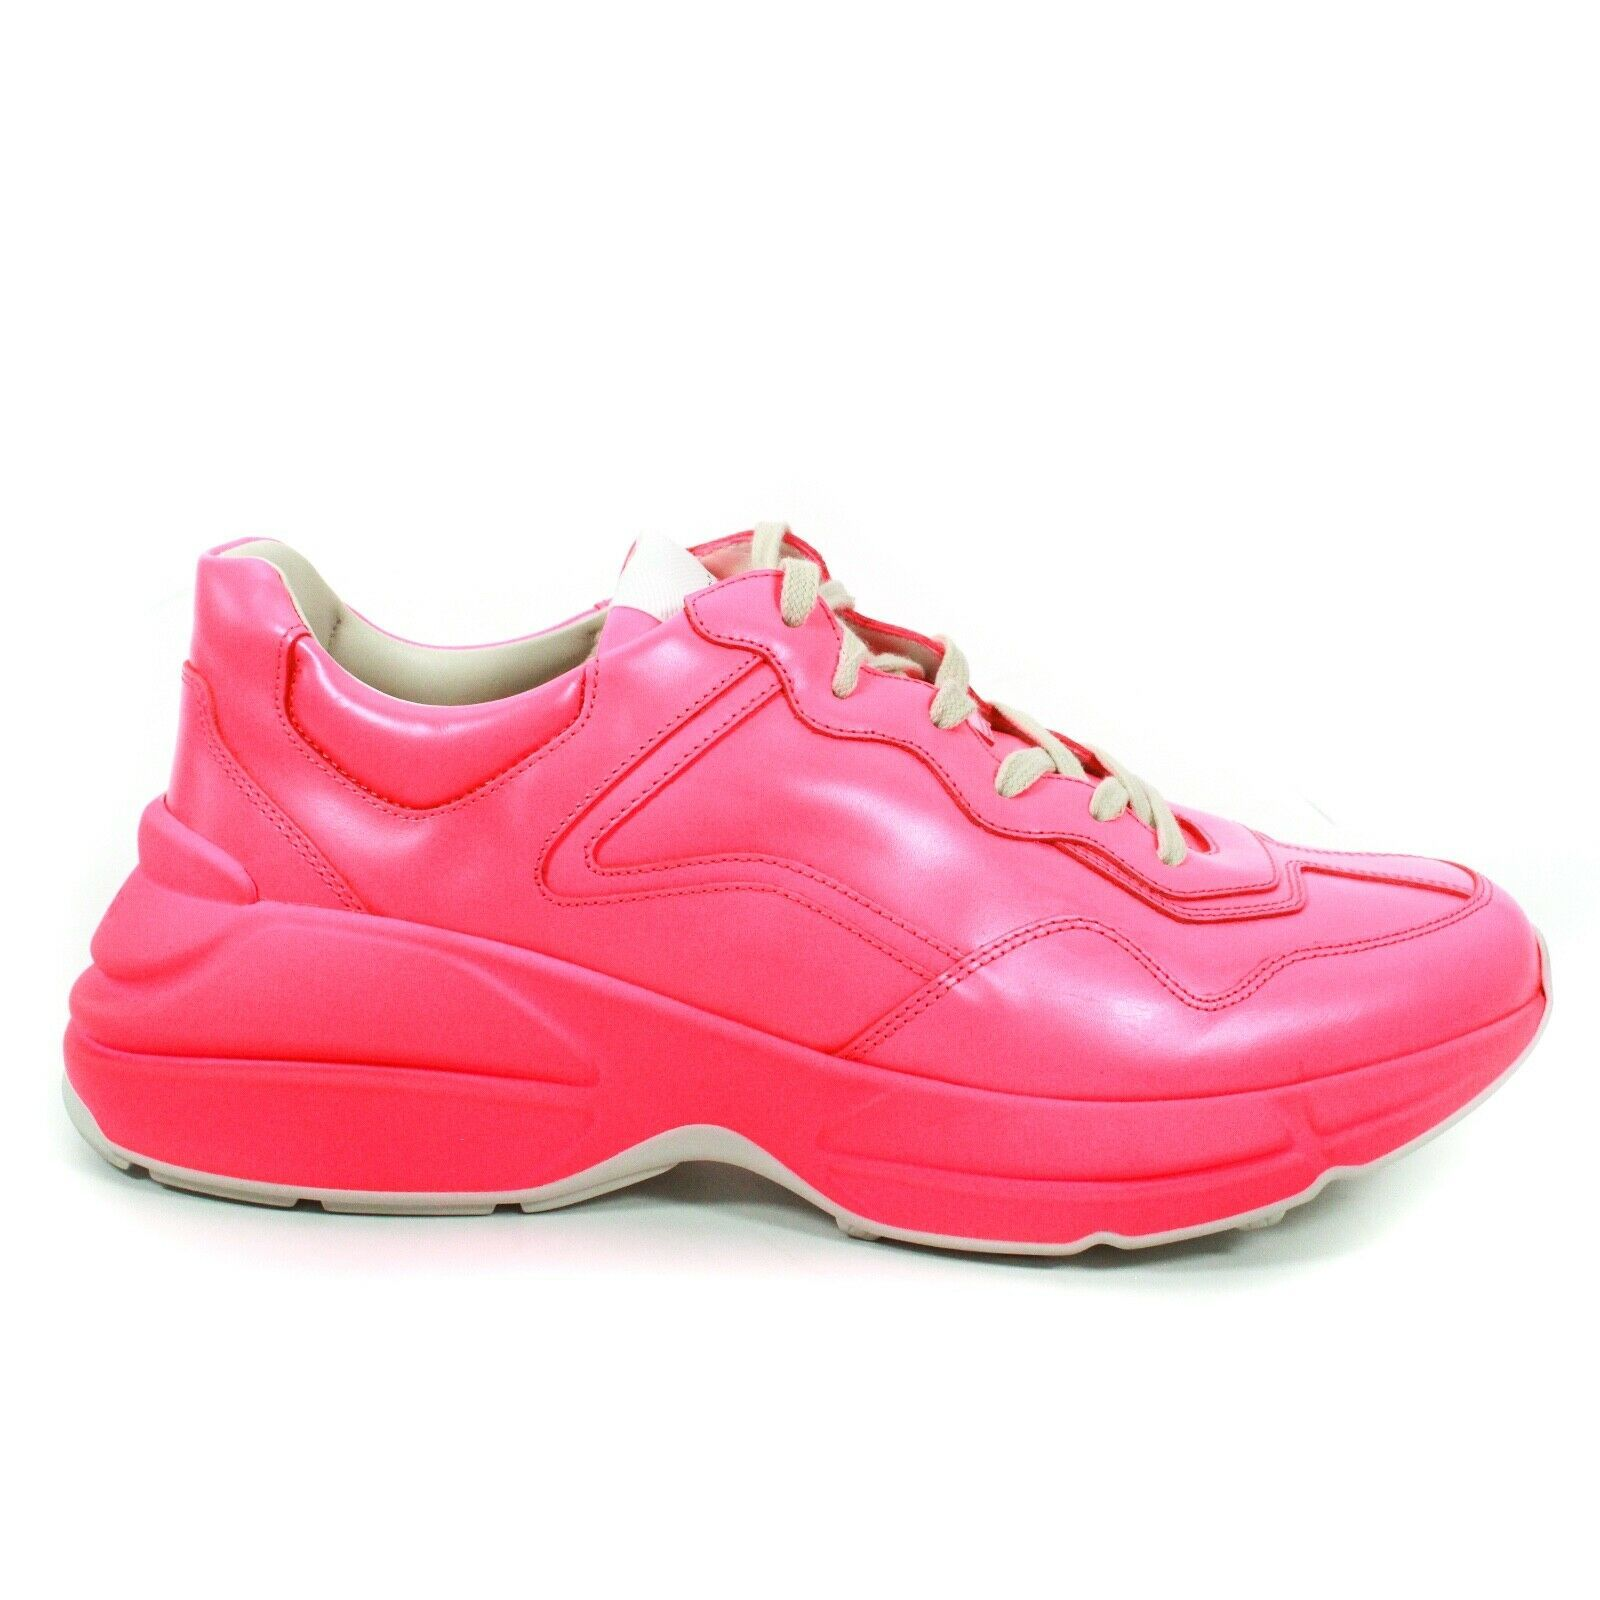 Gucci - NEW Rhyton Neon Pink Sneakers